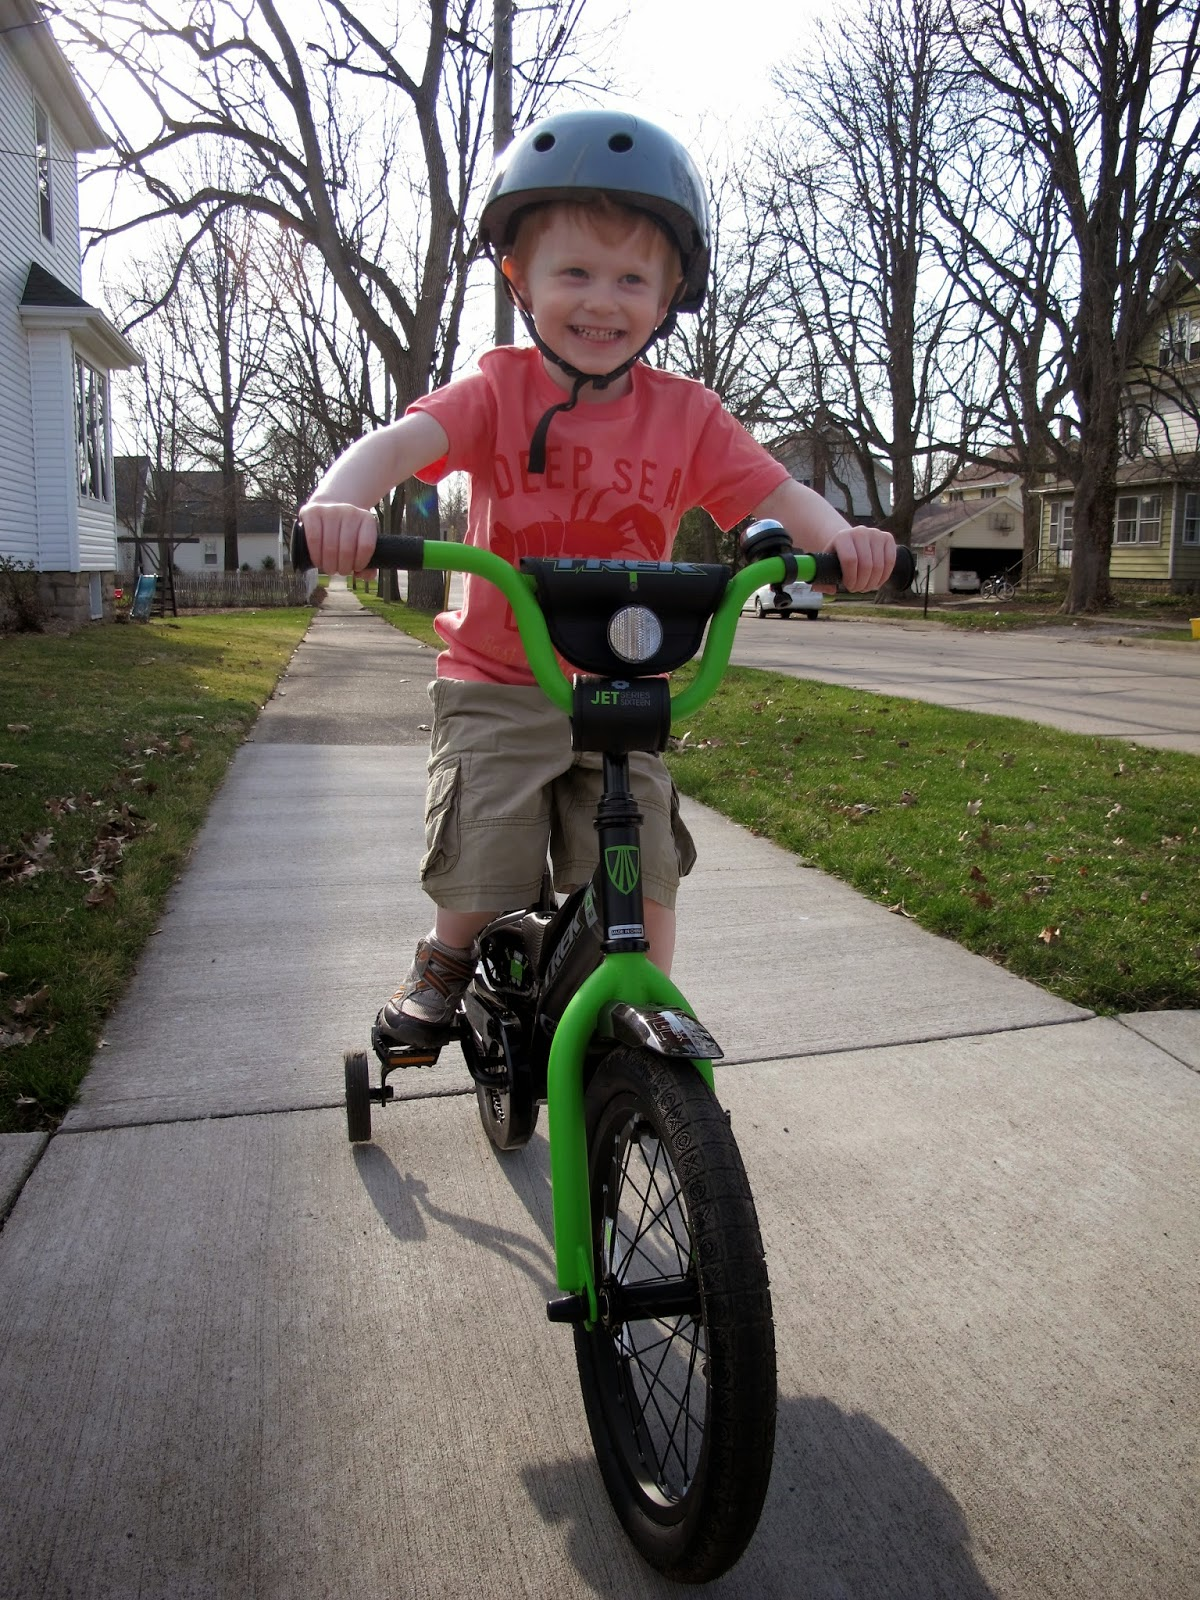 Porter on His New Bike